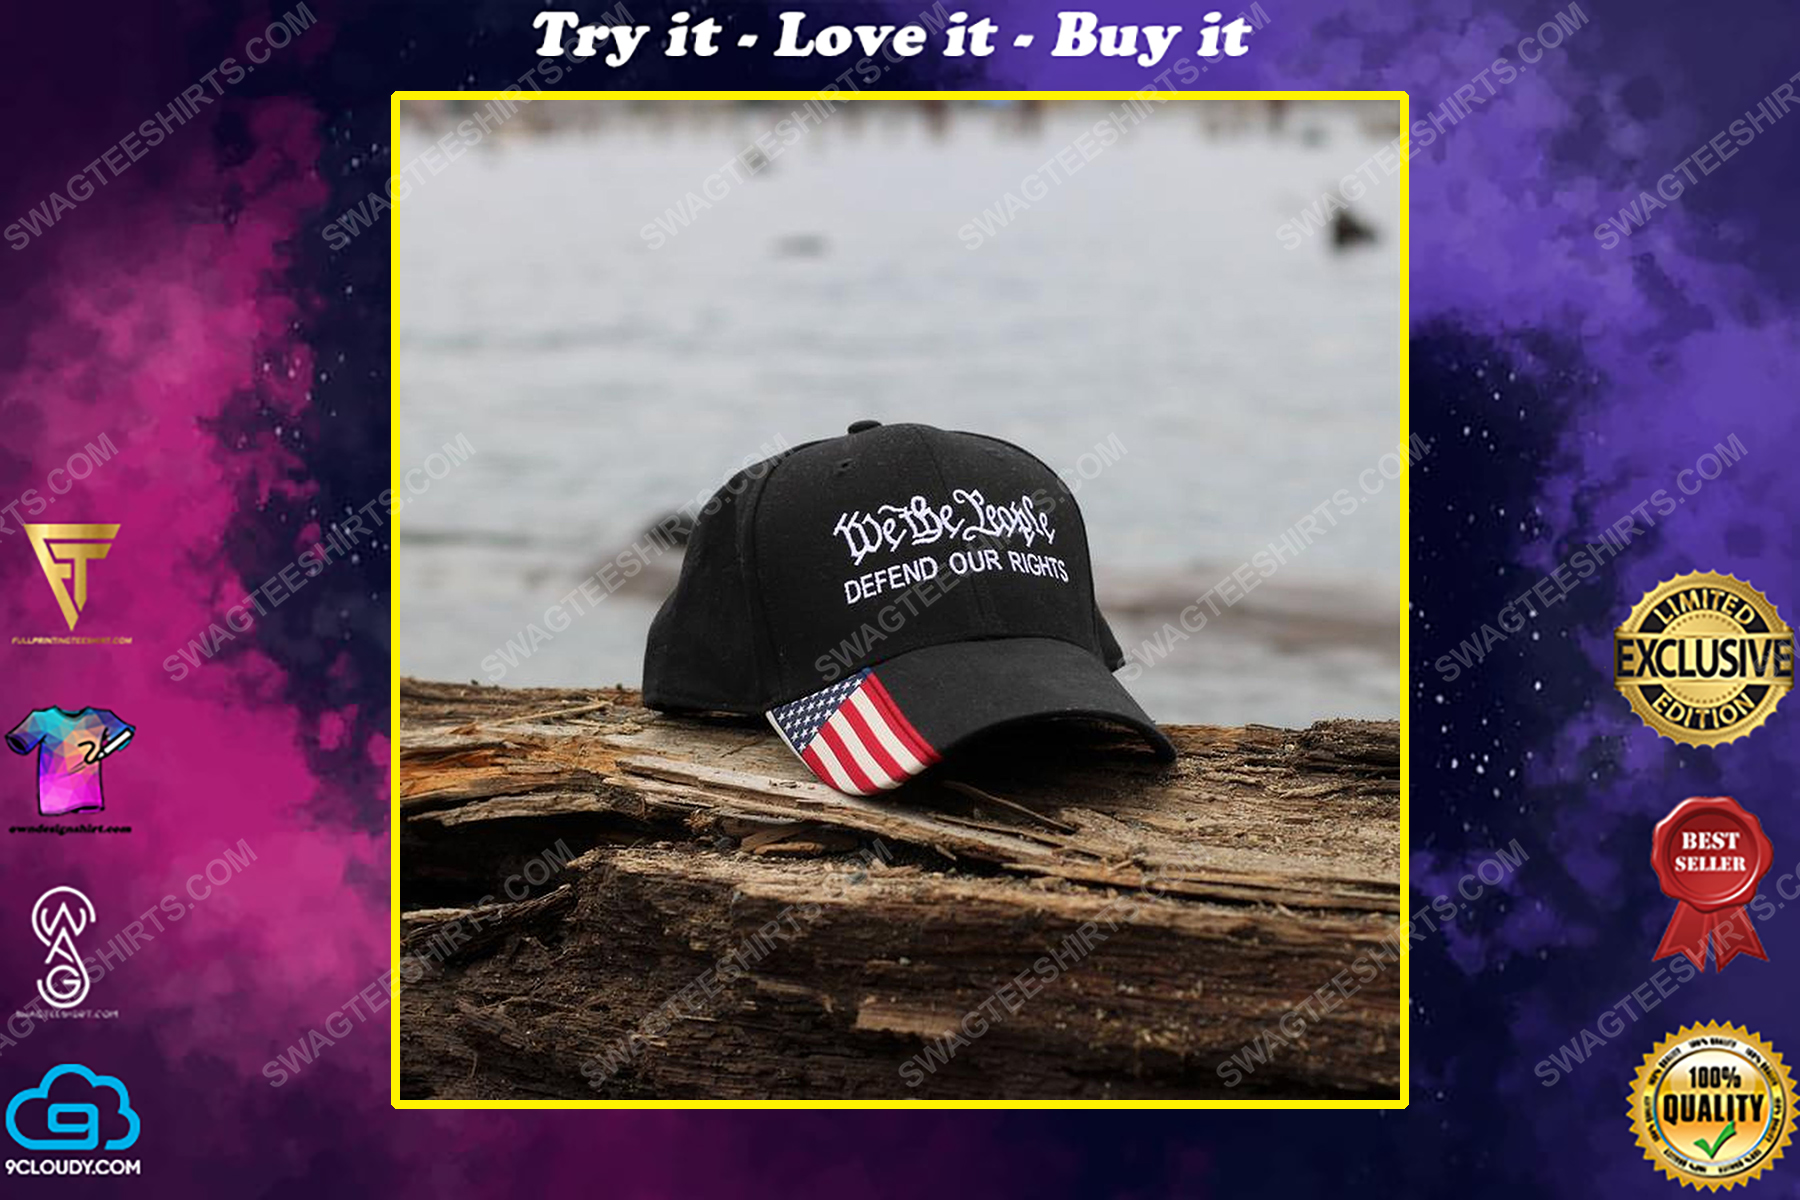 We the people defend our rights american flag full print classic hat